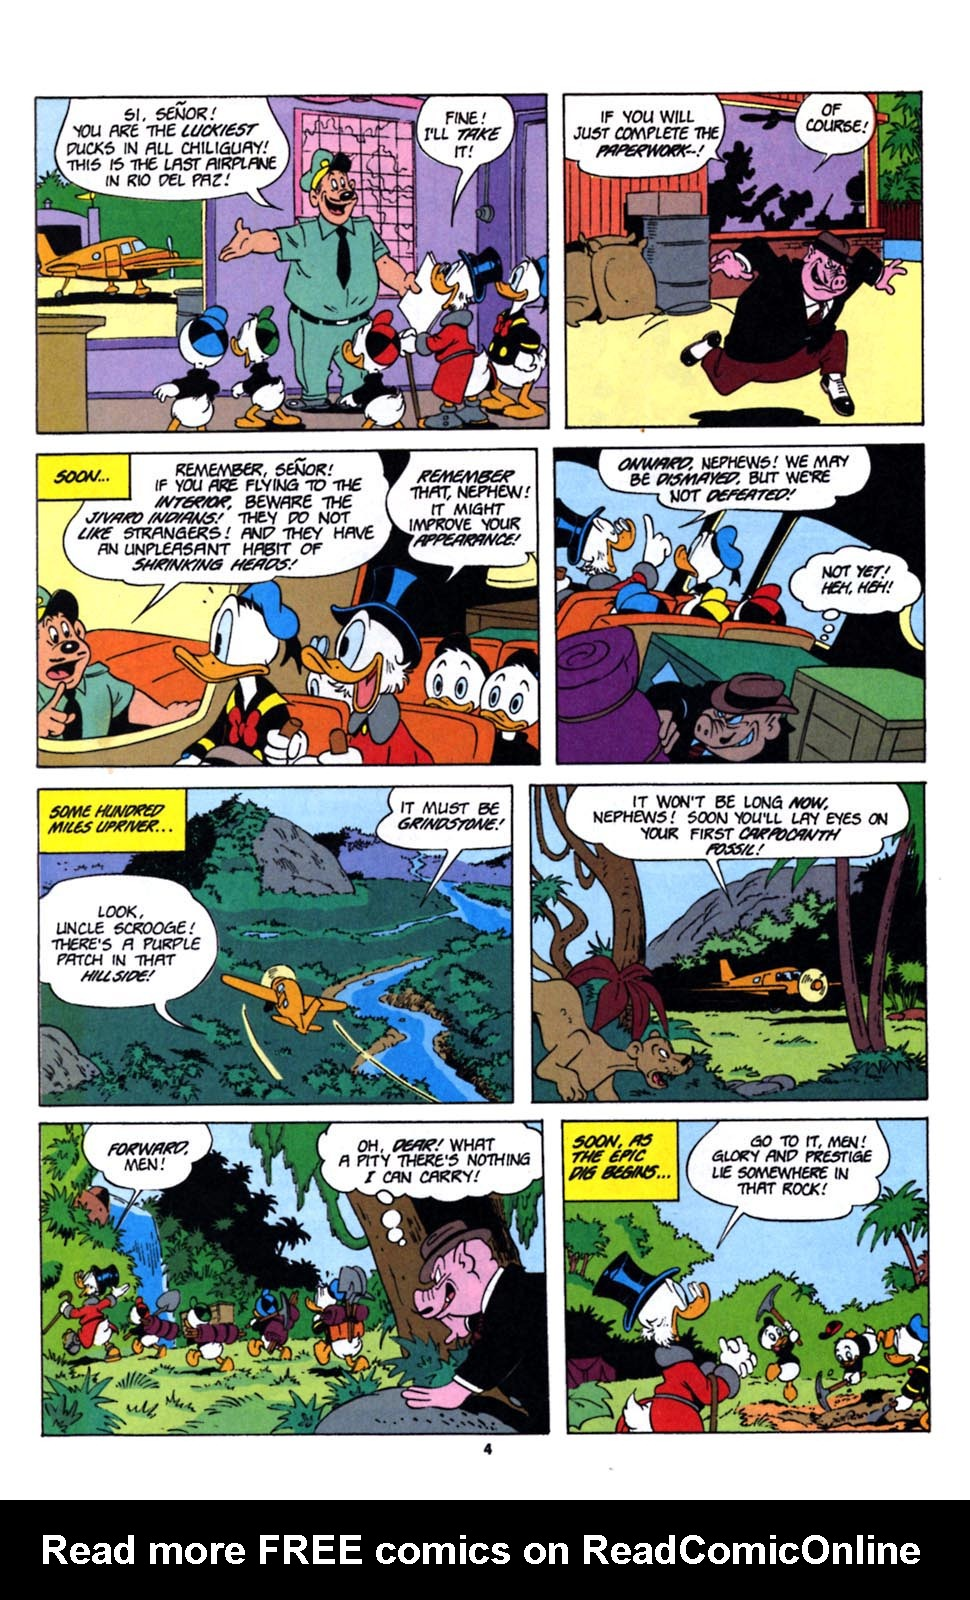 inefree.com/uncle-scrooge #162 - English 20